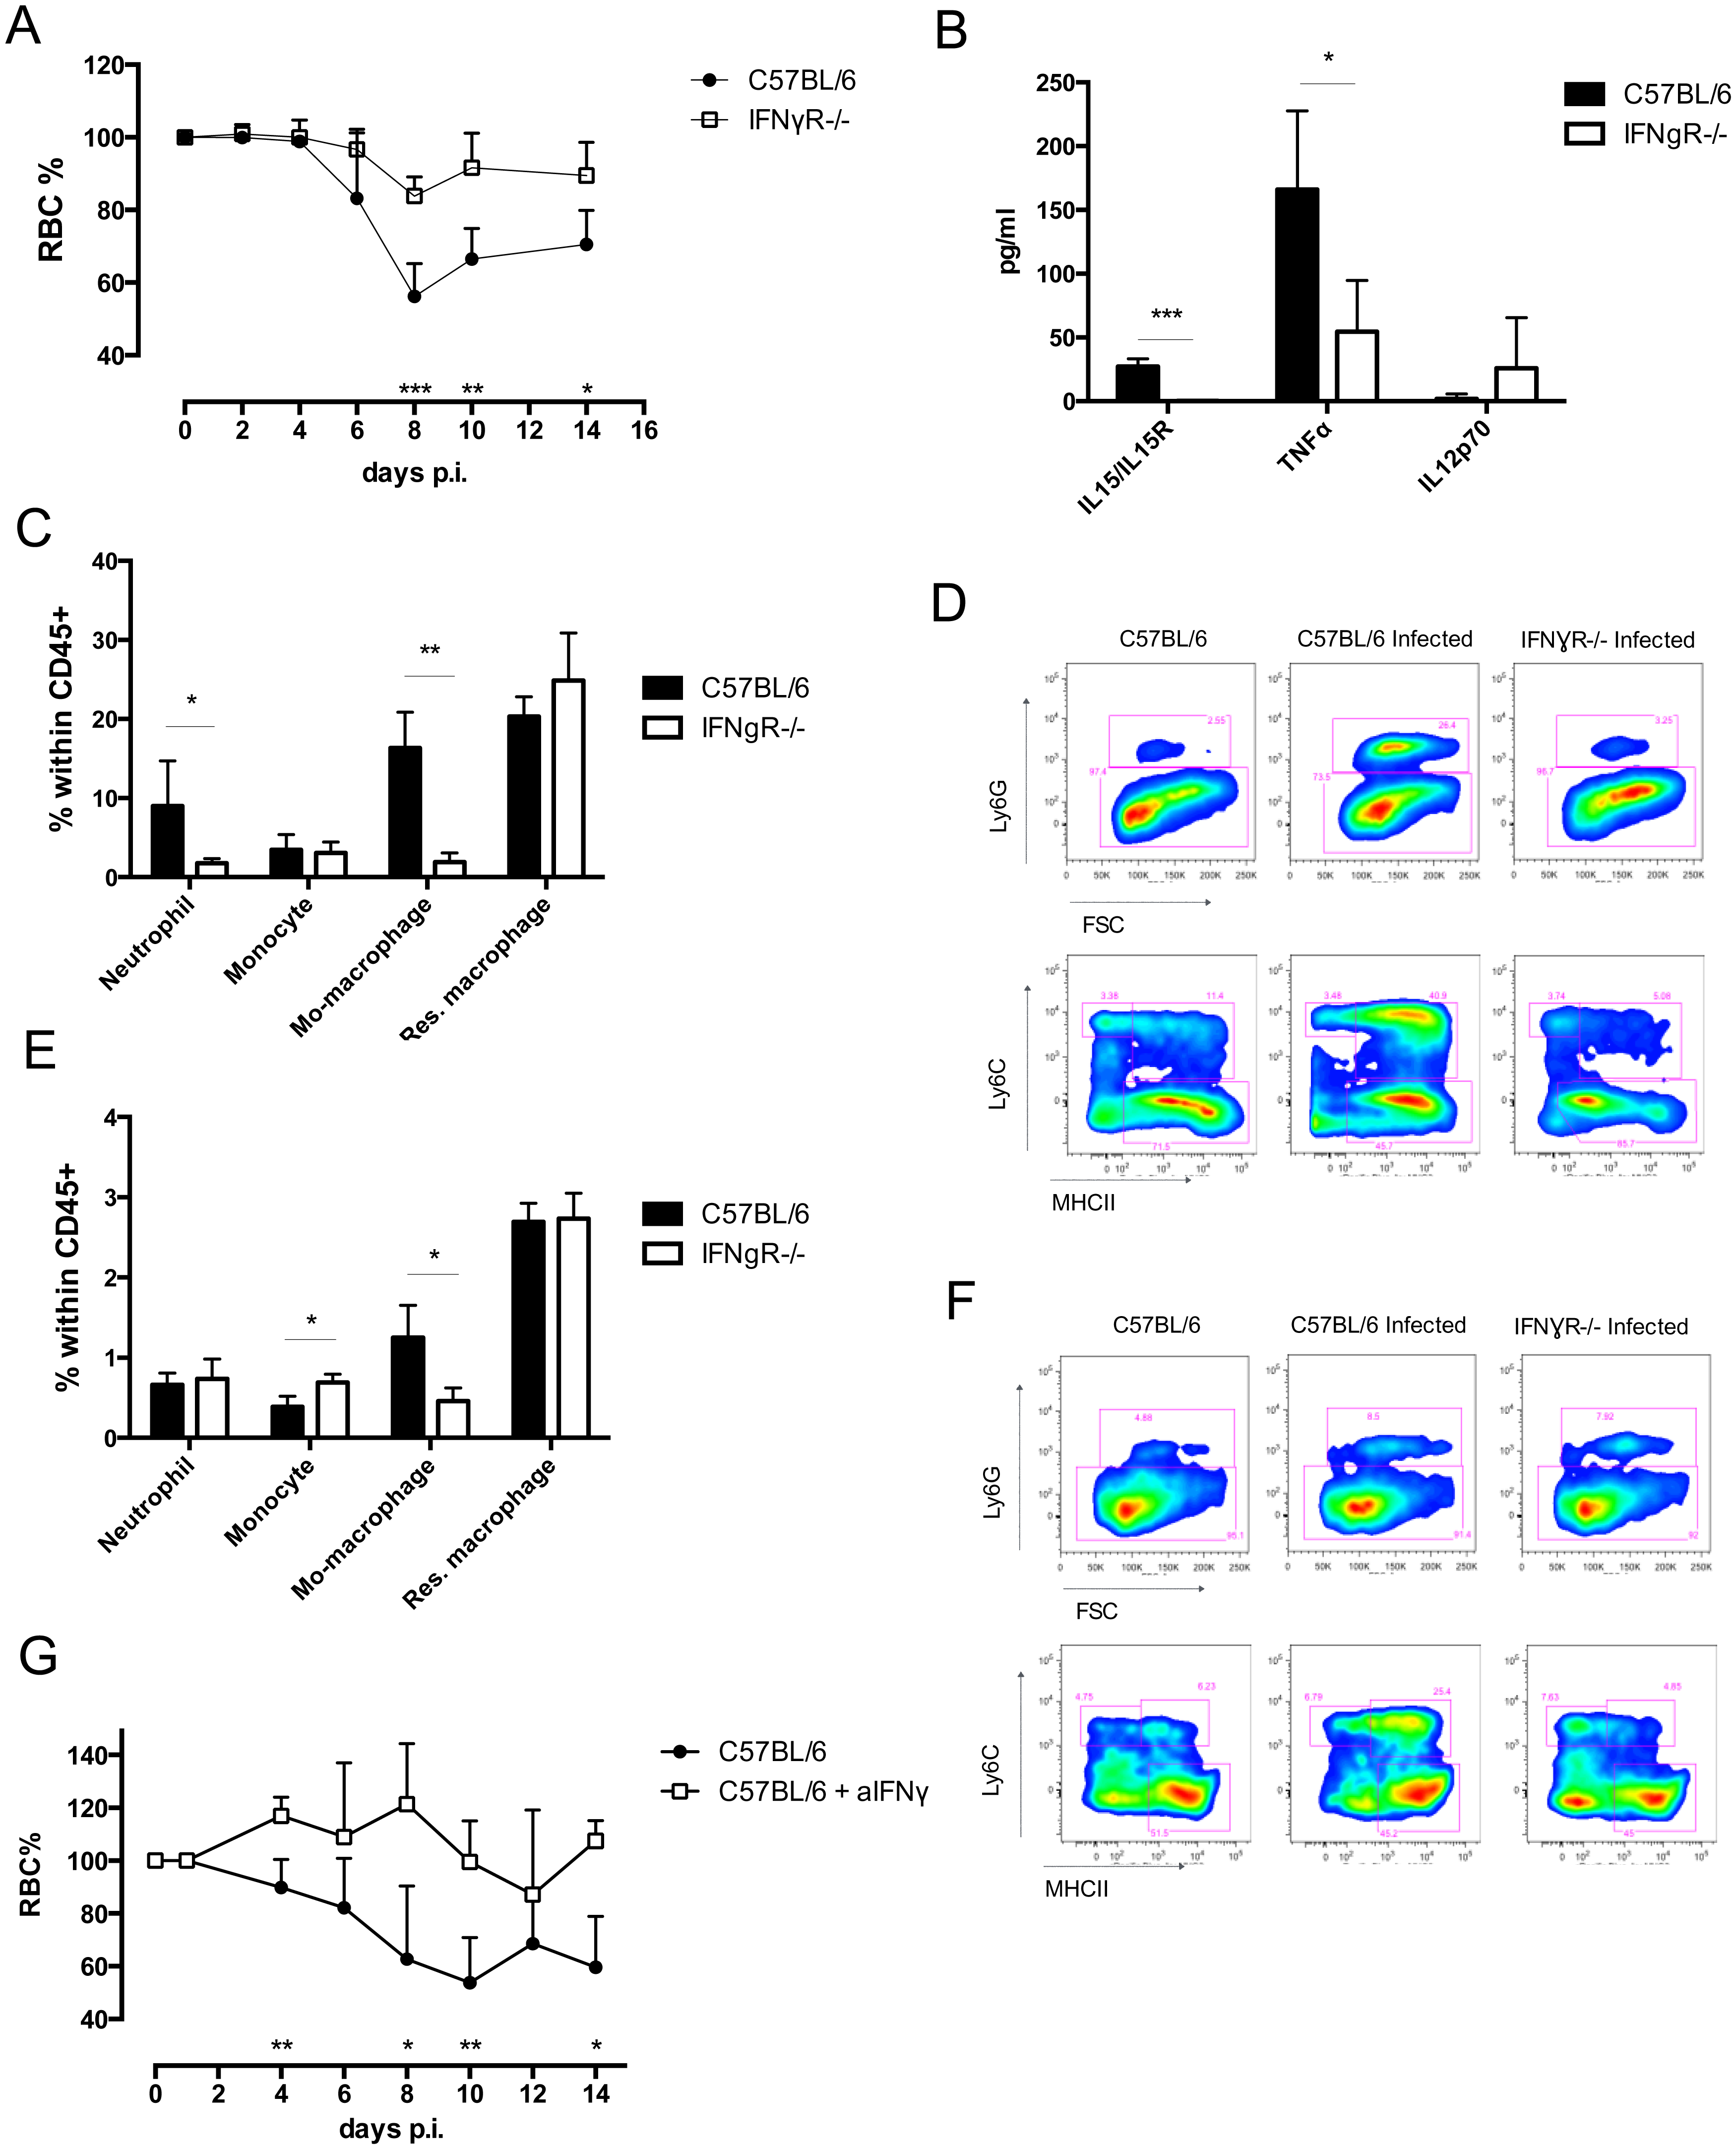 Analysis of cell composition and serum cytokines in IFNγR-/- mice.